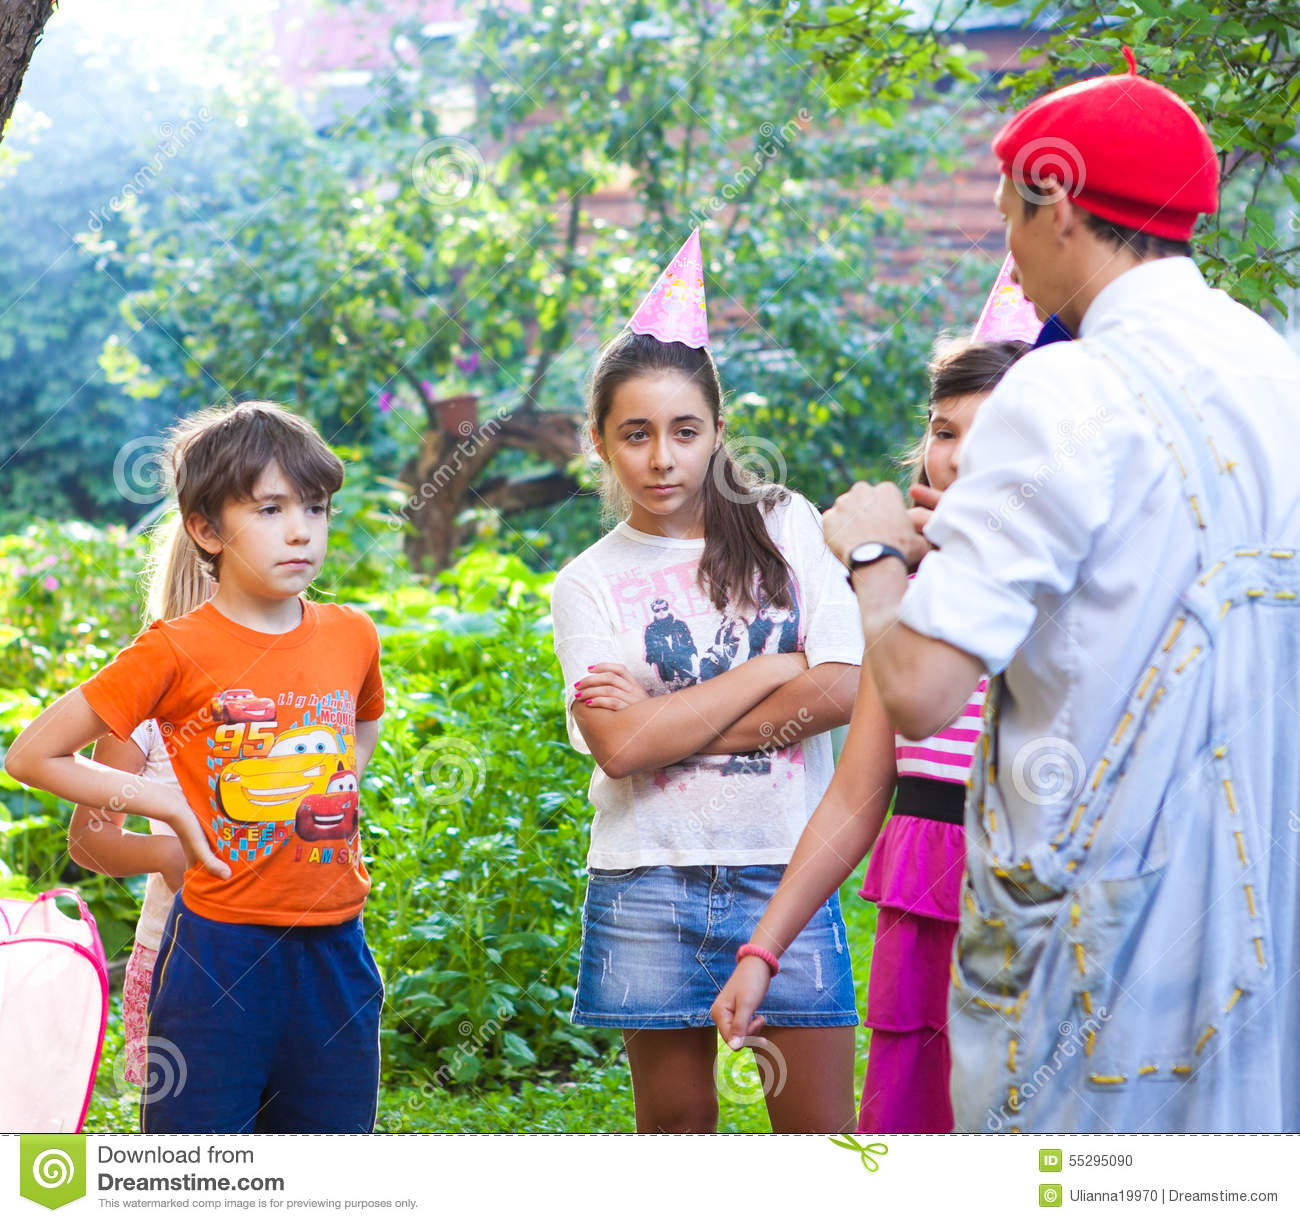 RUSSIA, MOSCOW, JULY 22, 2014: Country kids celebrate birthday p